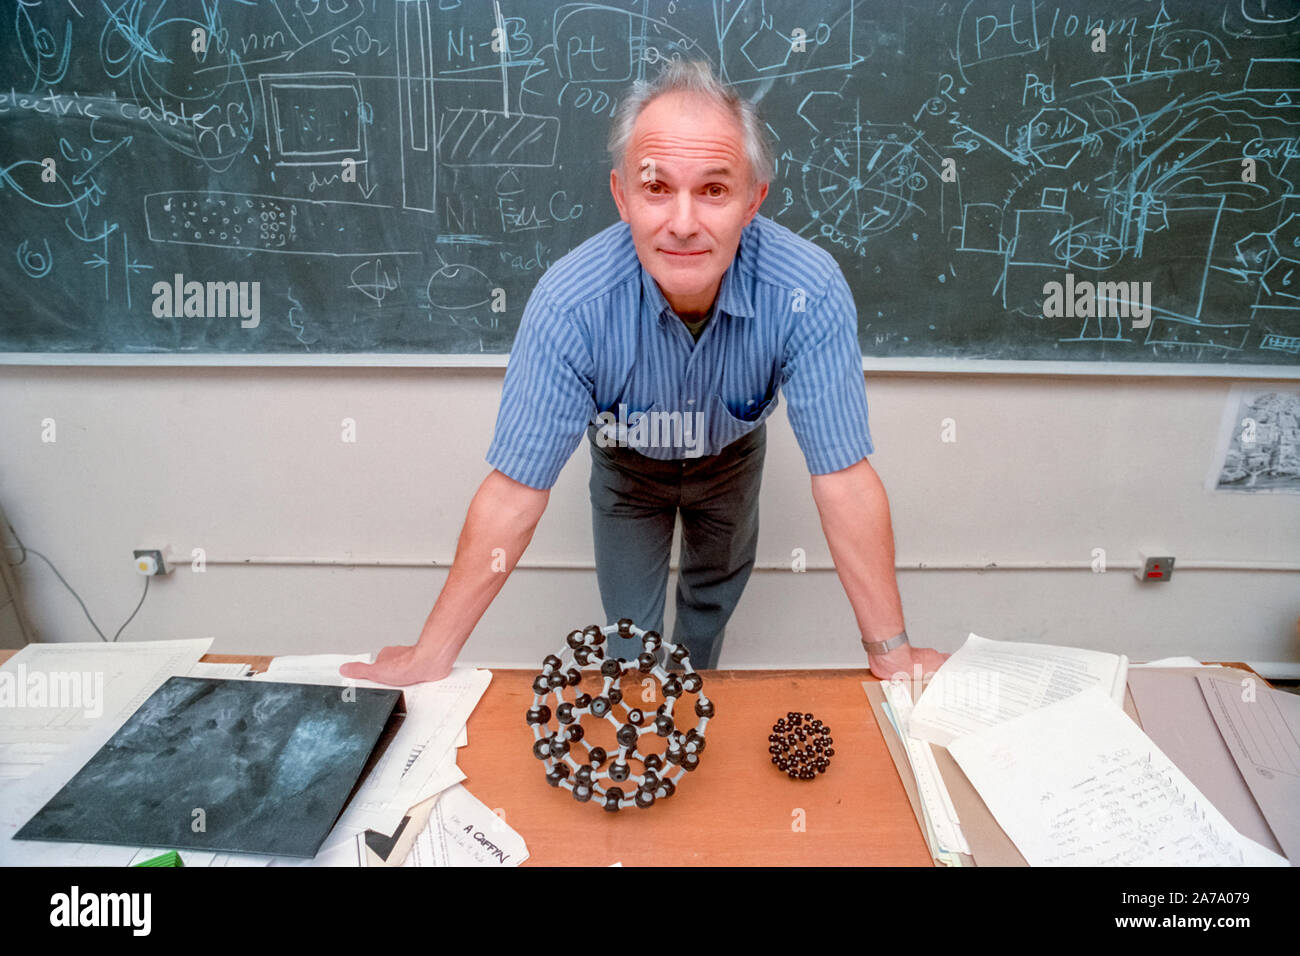 Professor Sir Harry Kroto Of The University Of Sussex Sir Harry Had Recently Been Awarded A Nobel Prize For Chemistry Stock Photo Alamy